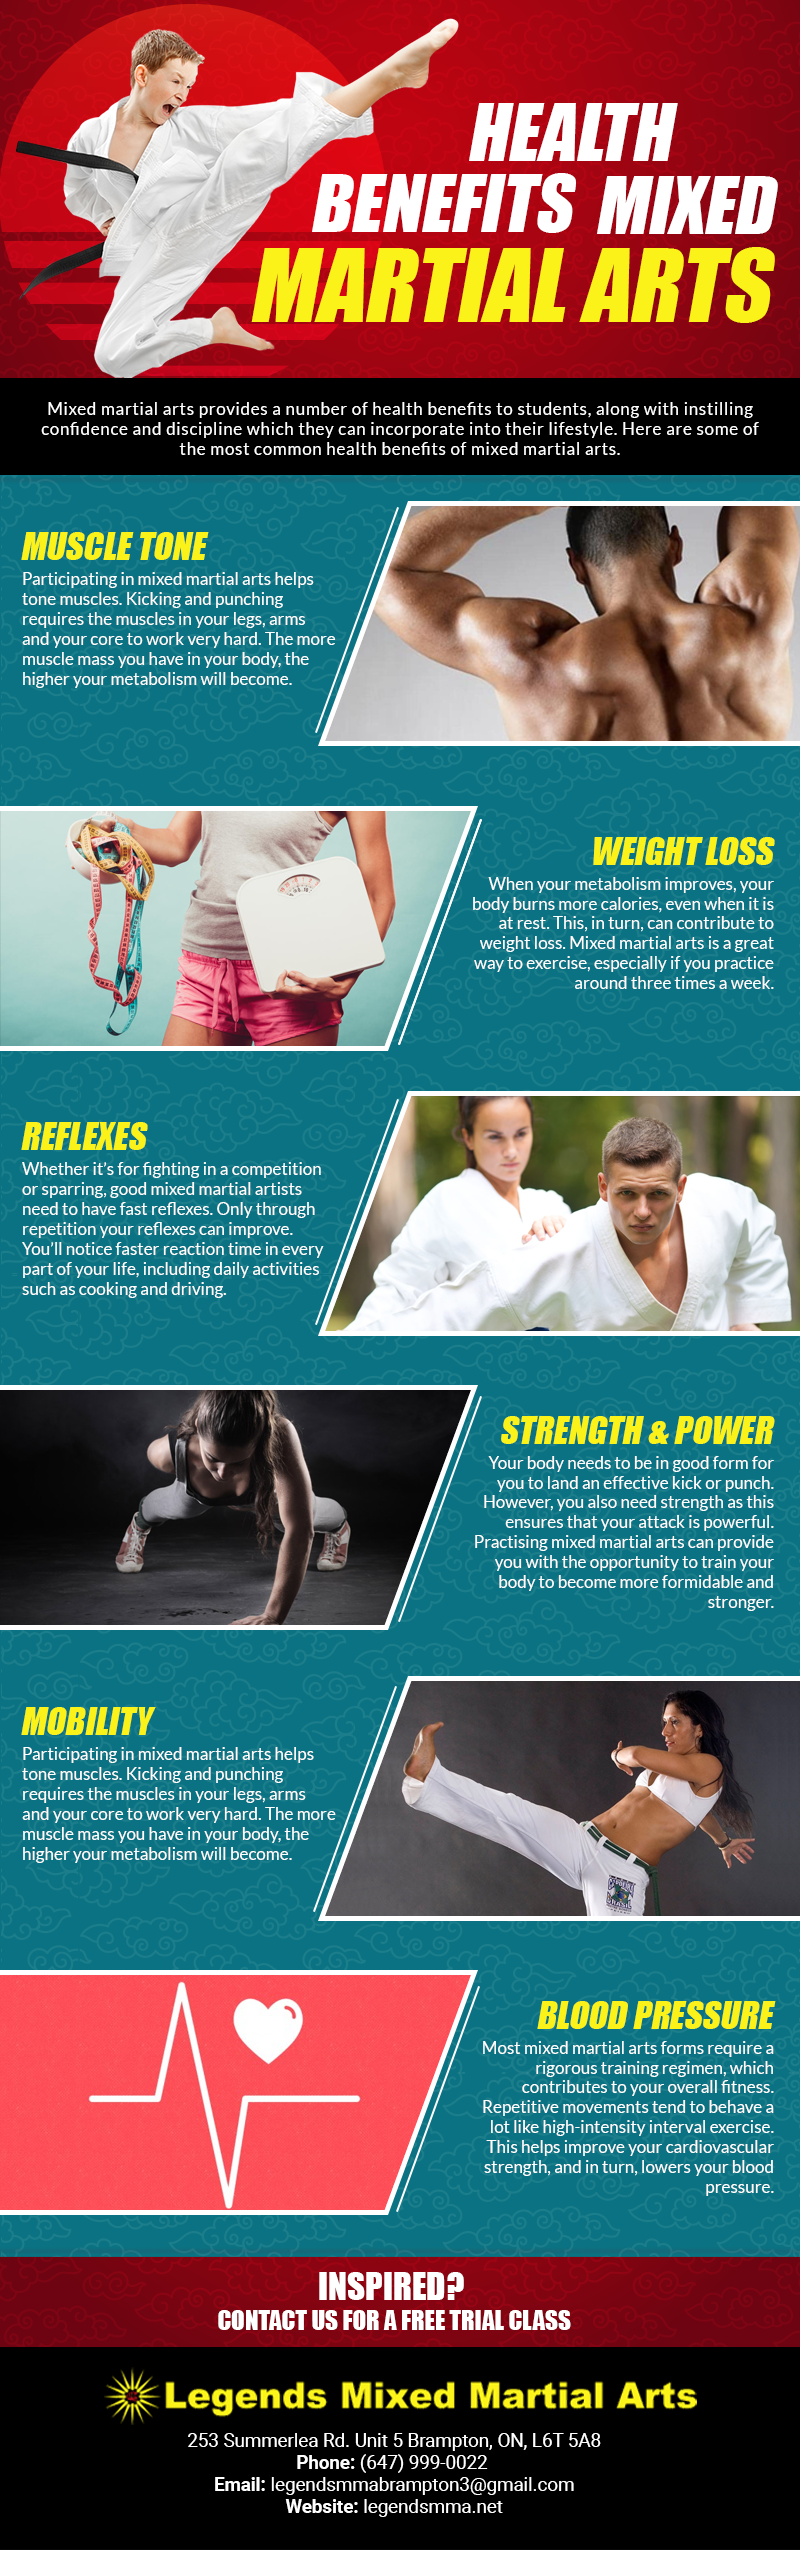 HEALTH BENEFITS OF MIXED MARTIAL ARTS